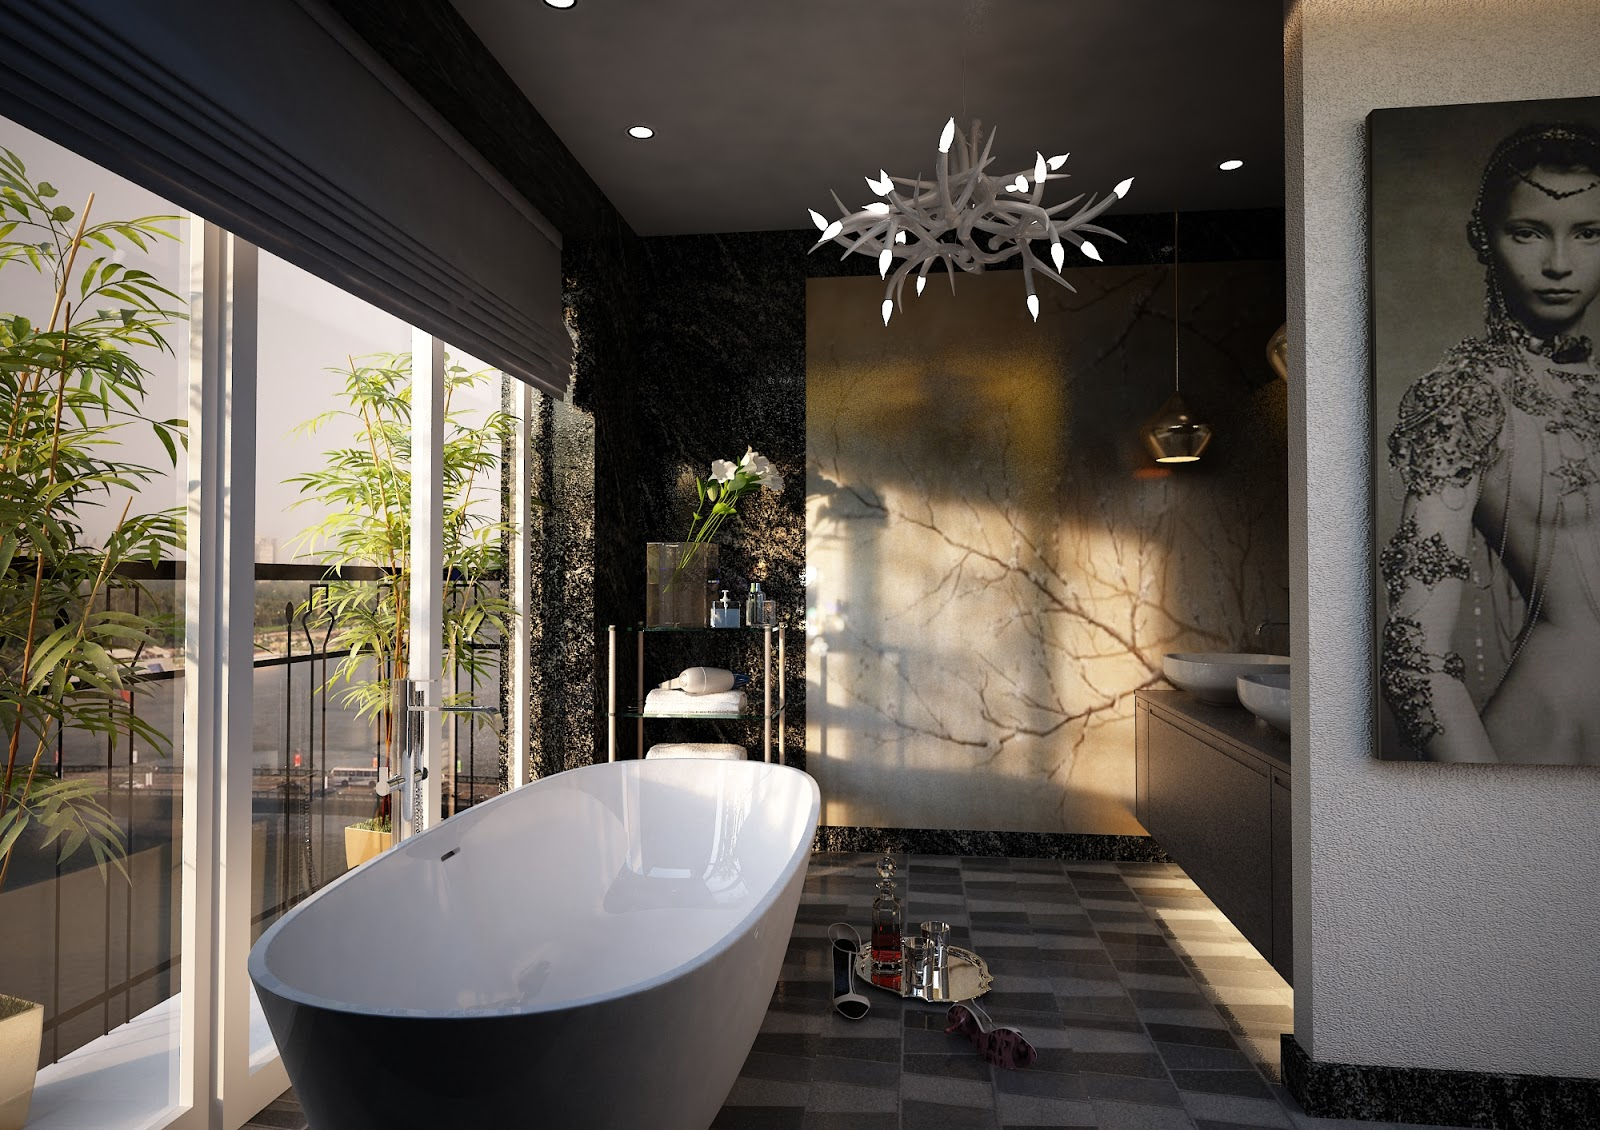 Modern Master Bathroom Designs: Interior Design & Visual Art